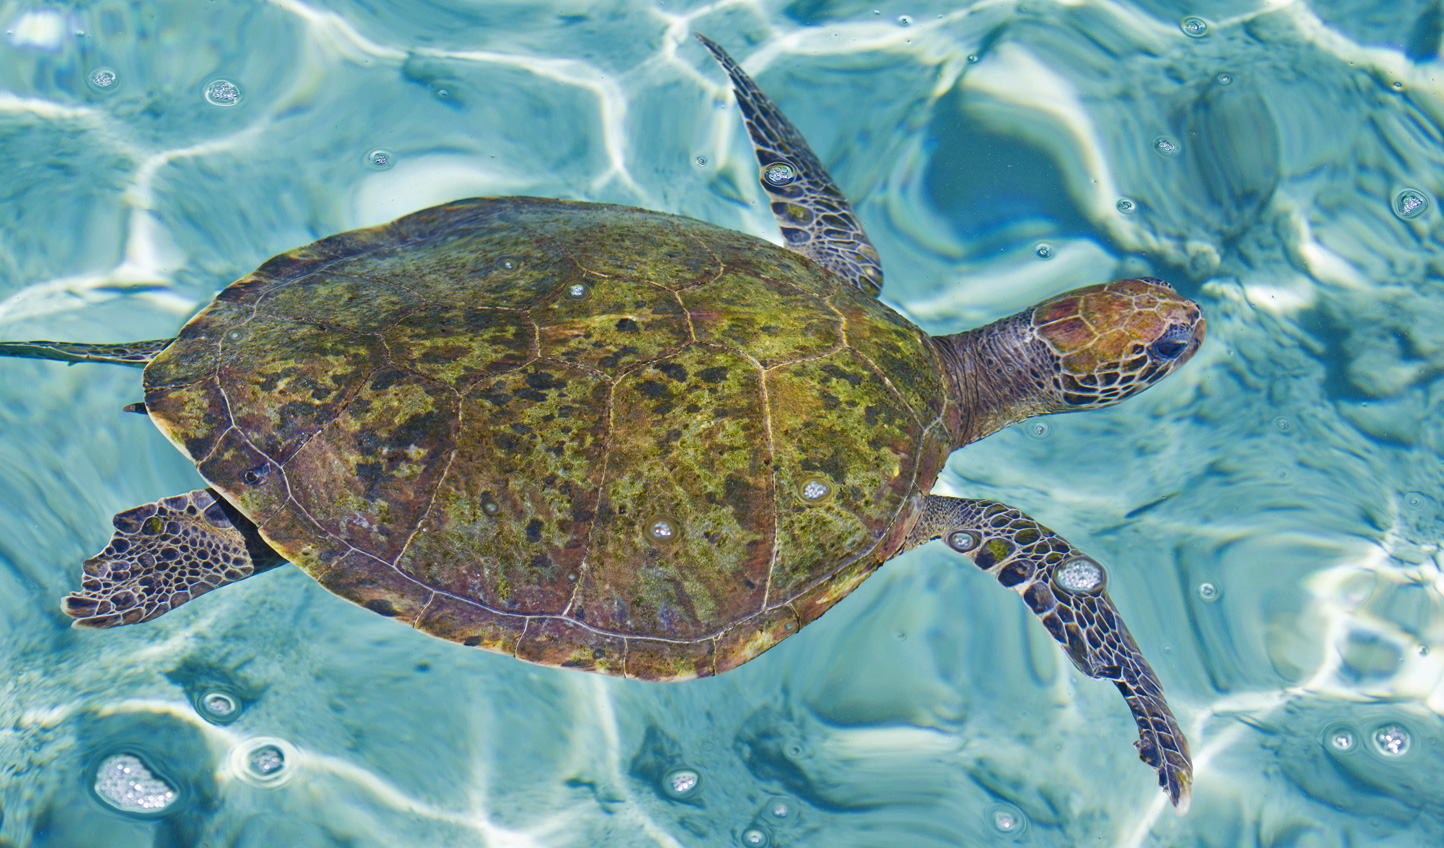 A turtle in the transparent waters of the Rosario Islands